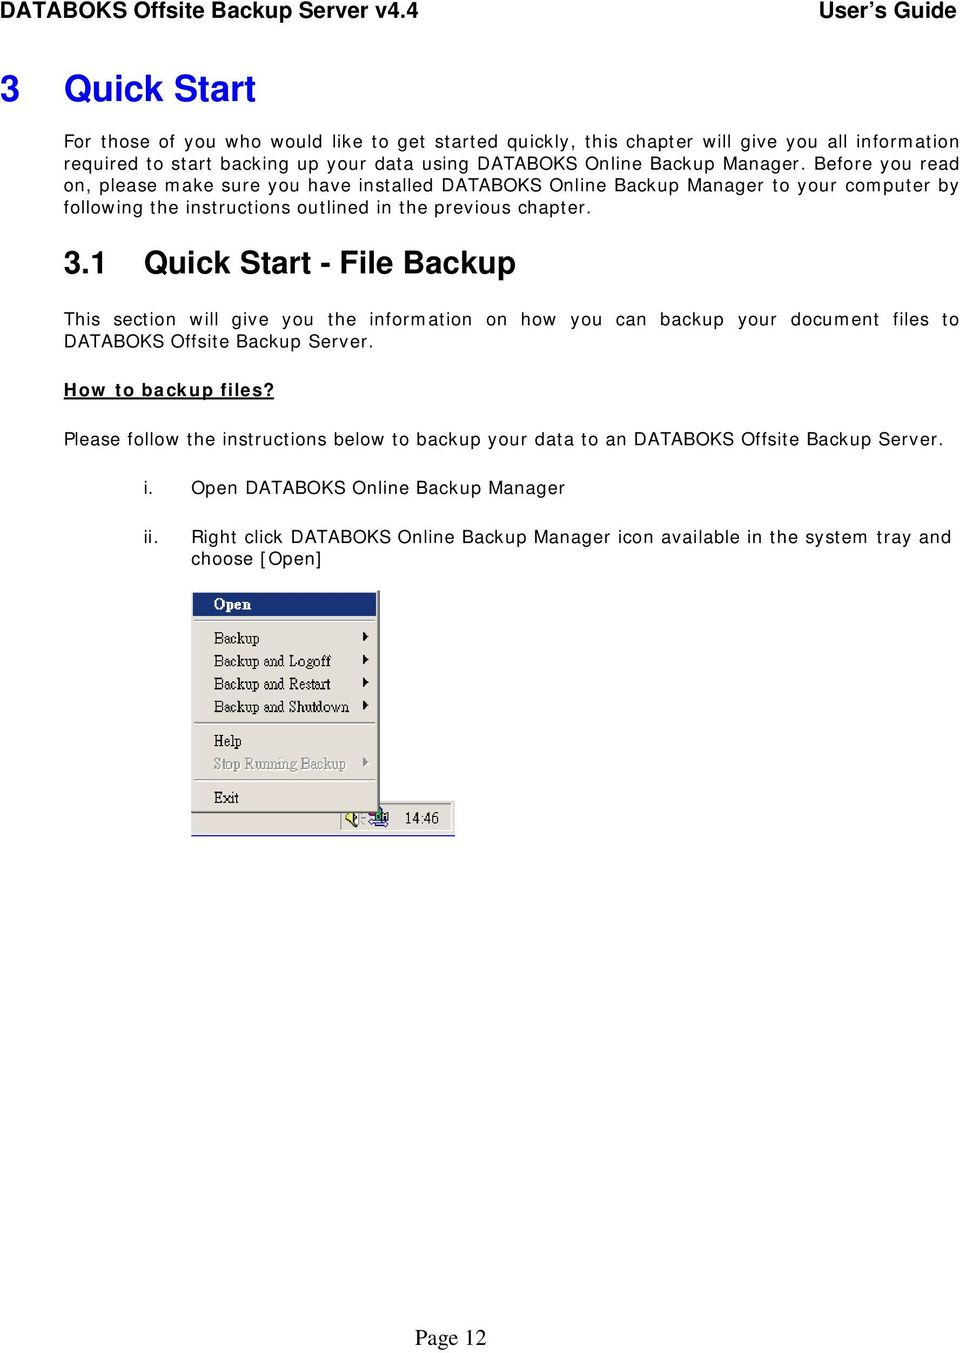 1 Quick Start - File Backup This section will give you the information on how you can backup your document files to DATABOKS Offsite Backup Server. How to backup files?